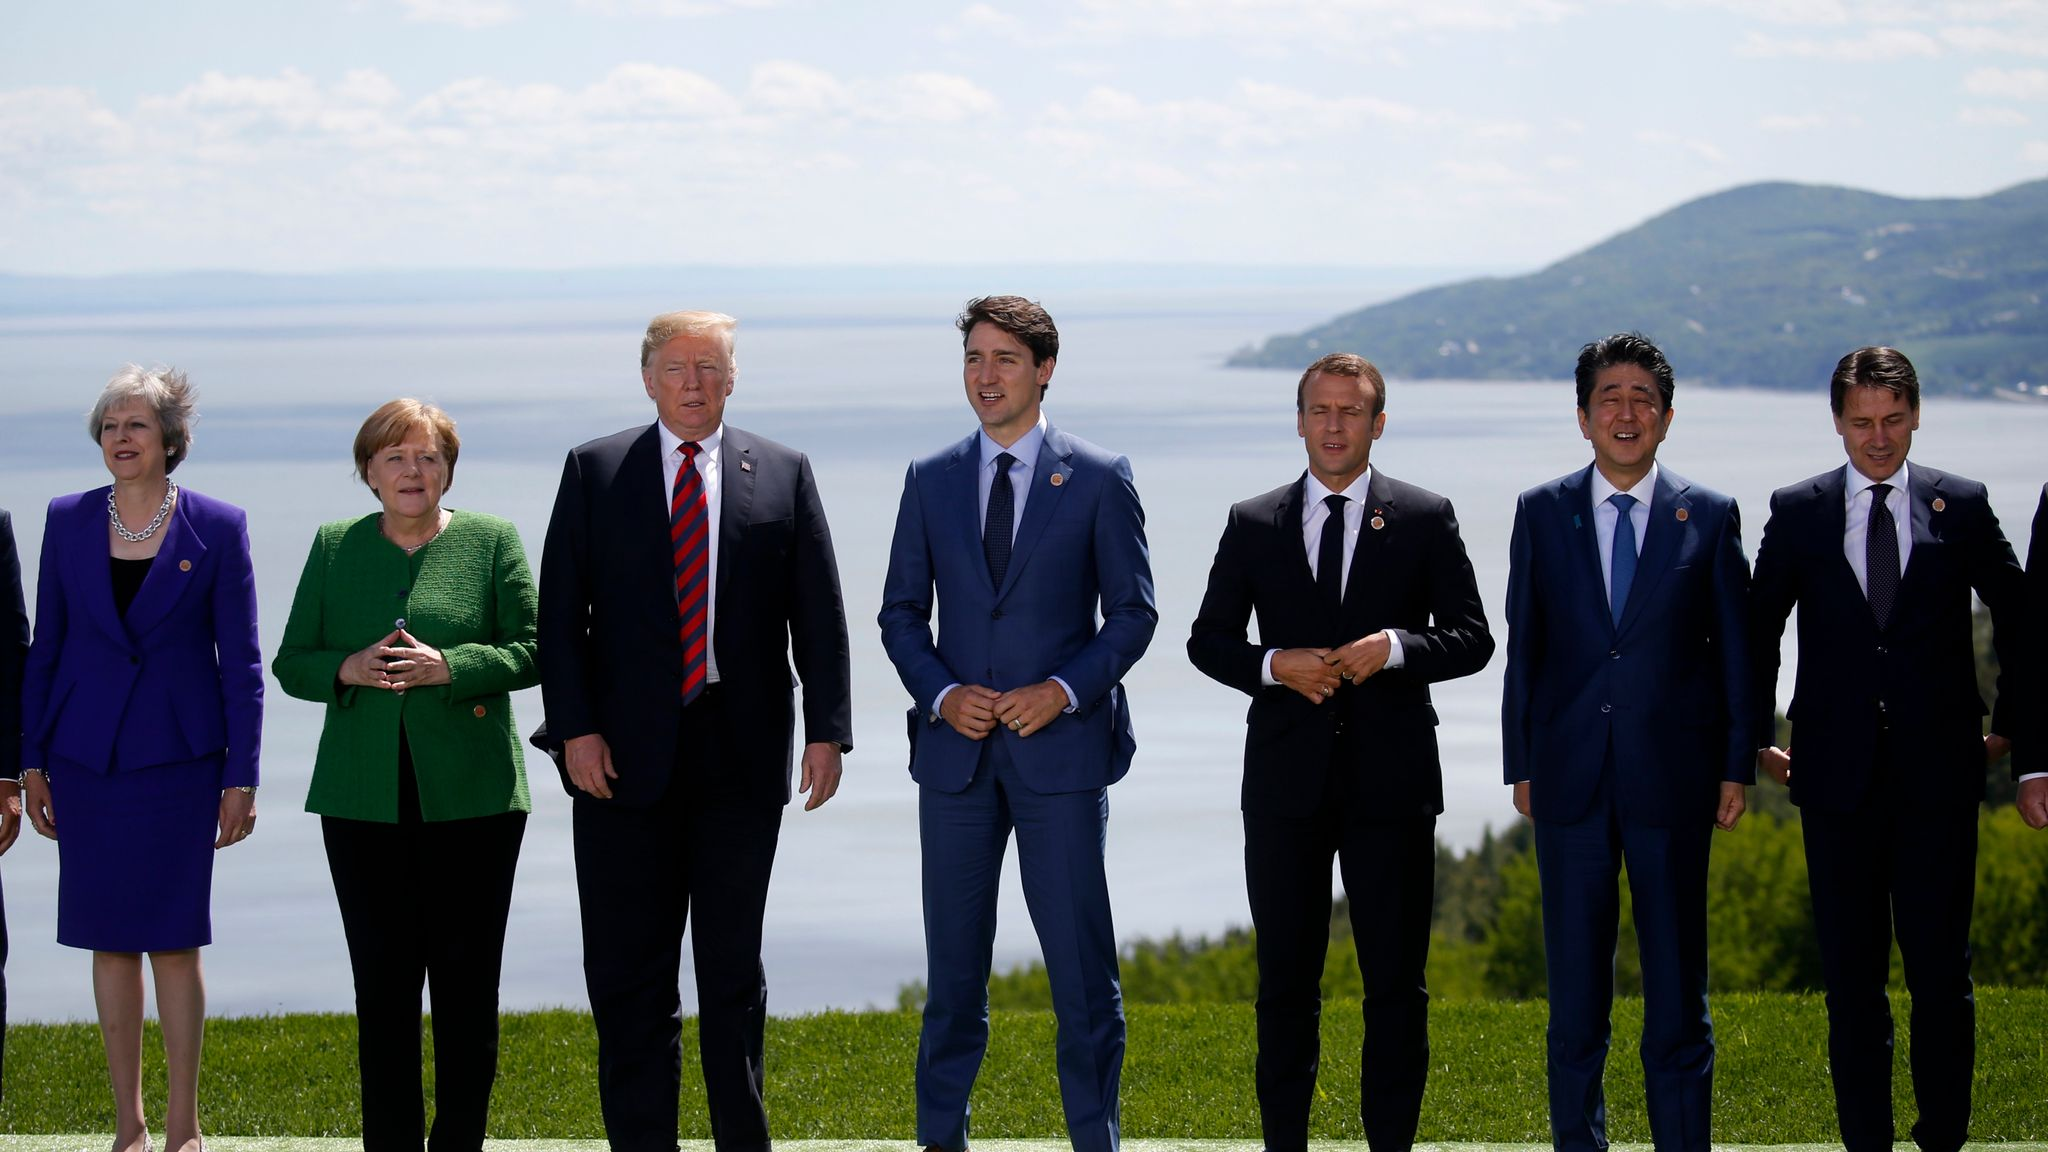 G7 Leaders Reject Donald Trump S Call For Russia To Be Reinstated To Group World News Sky News